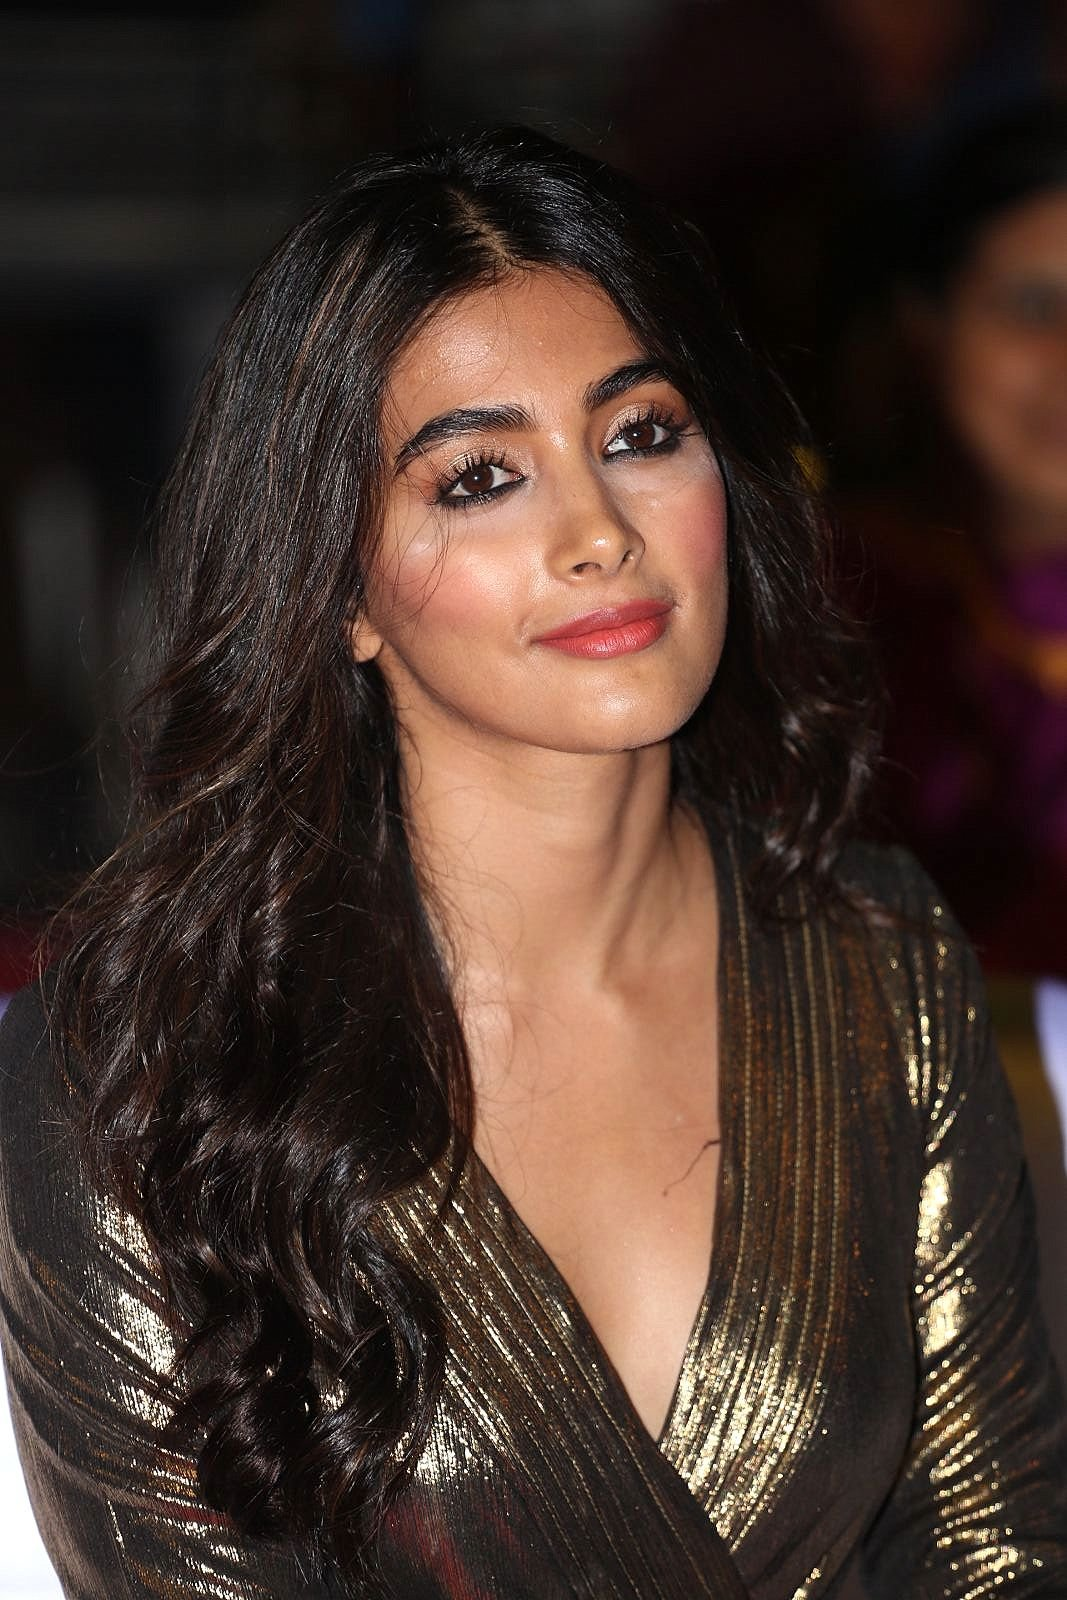 High Quality Bollywood Celebrity Pictures Pooja Hegde -5209